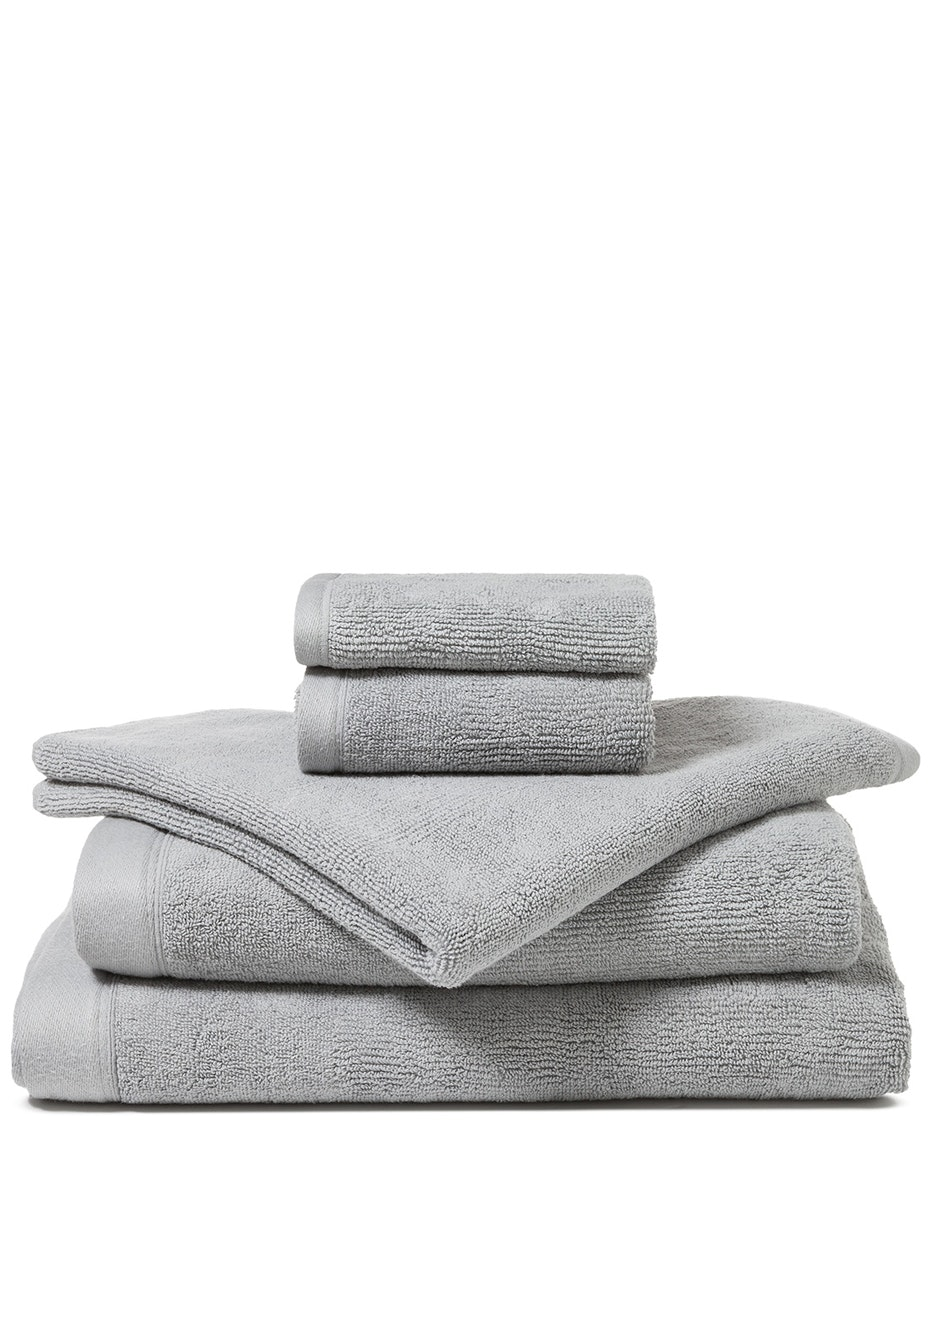 Canningvale - Corduroy Rib Bath Towel Grey